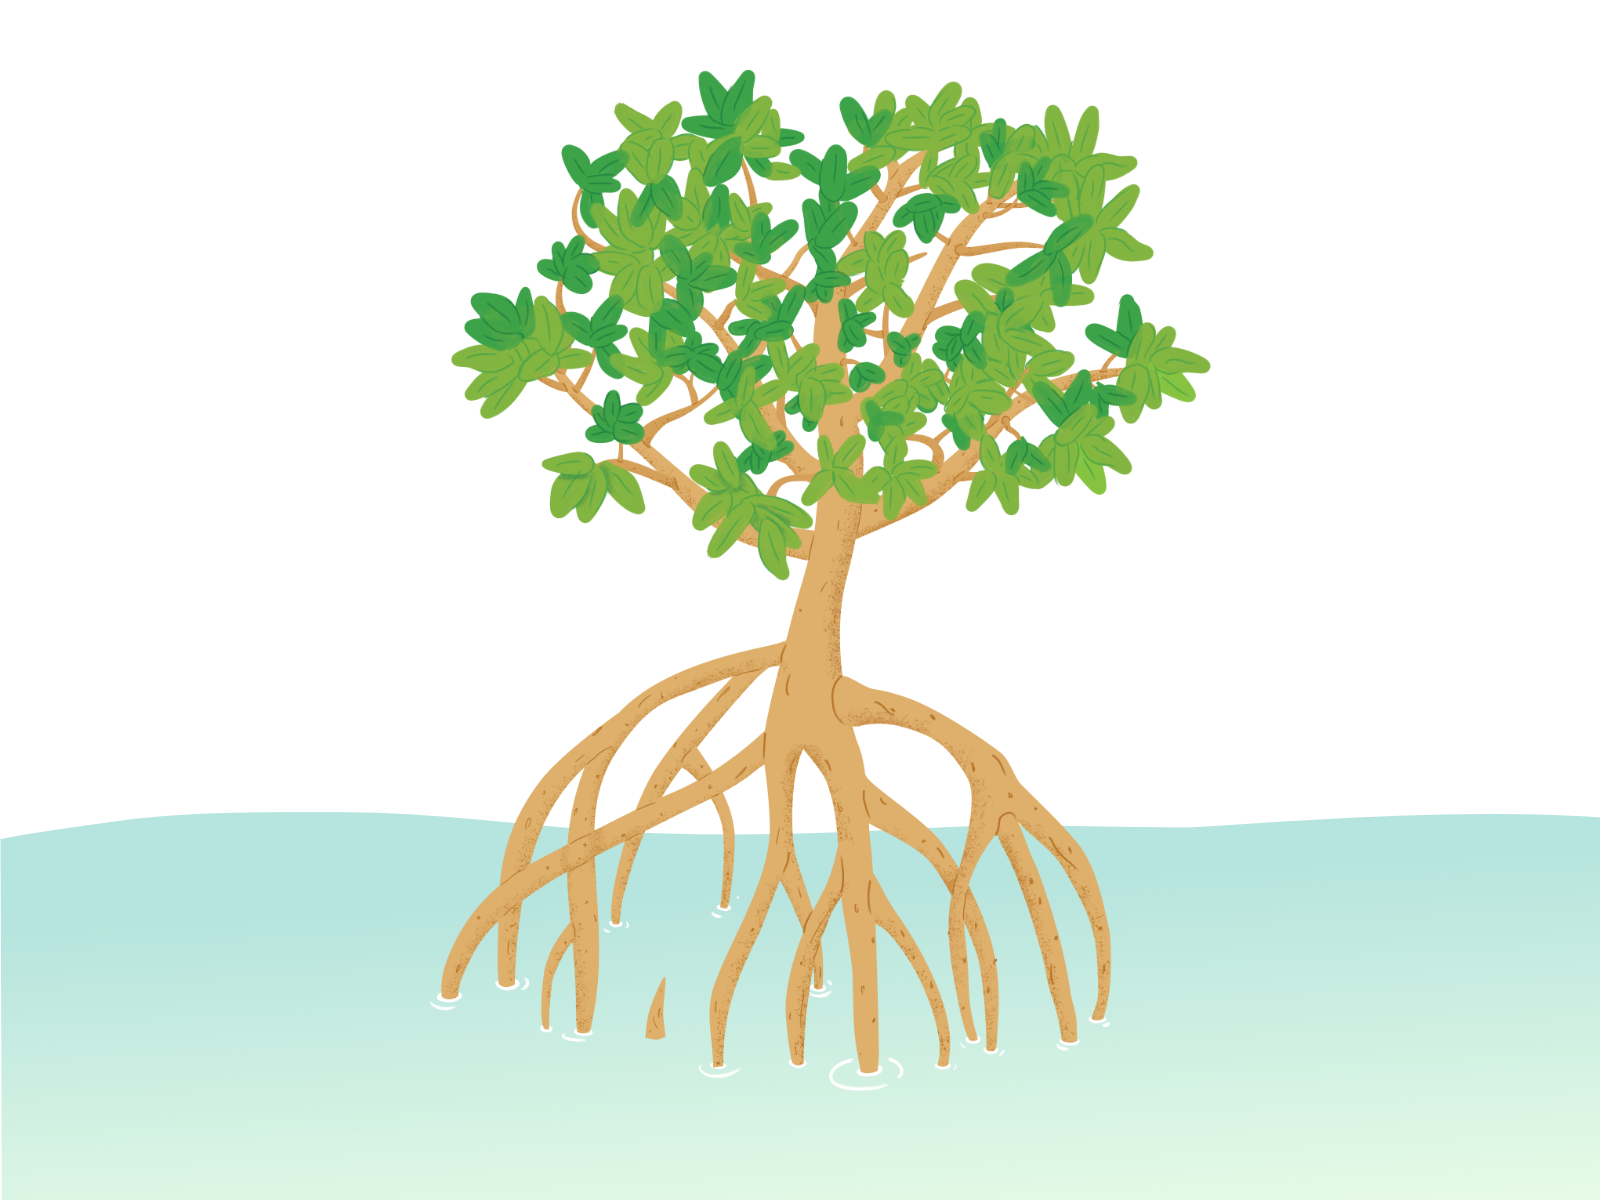 mangrove tree wip by alex strange on dribbble mangrove tree wip by alex strange on